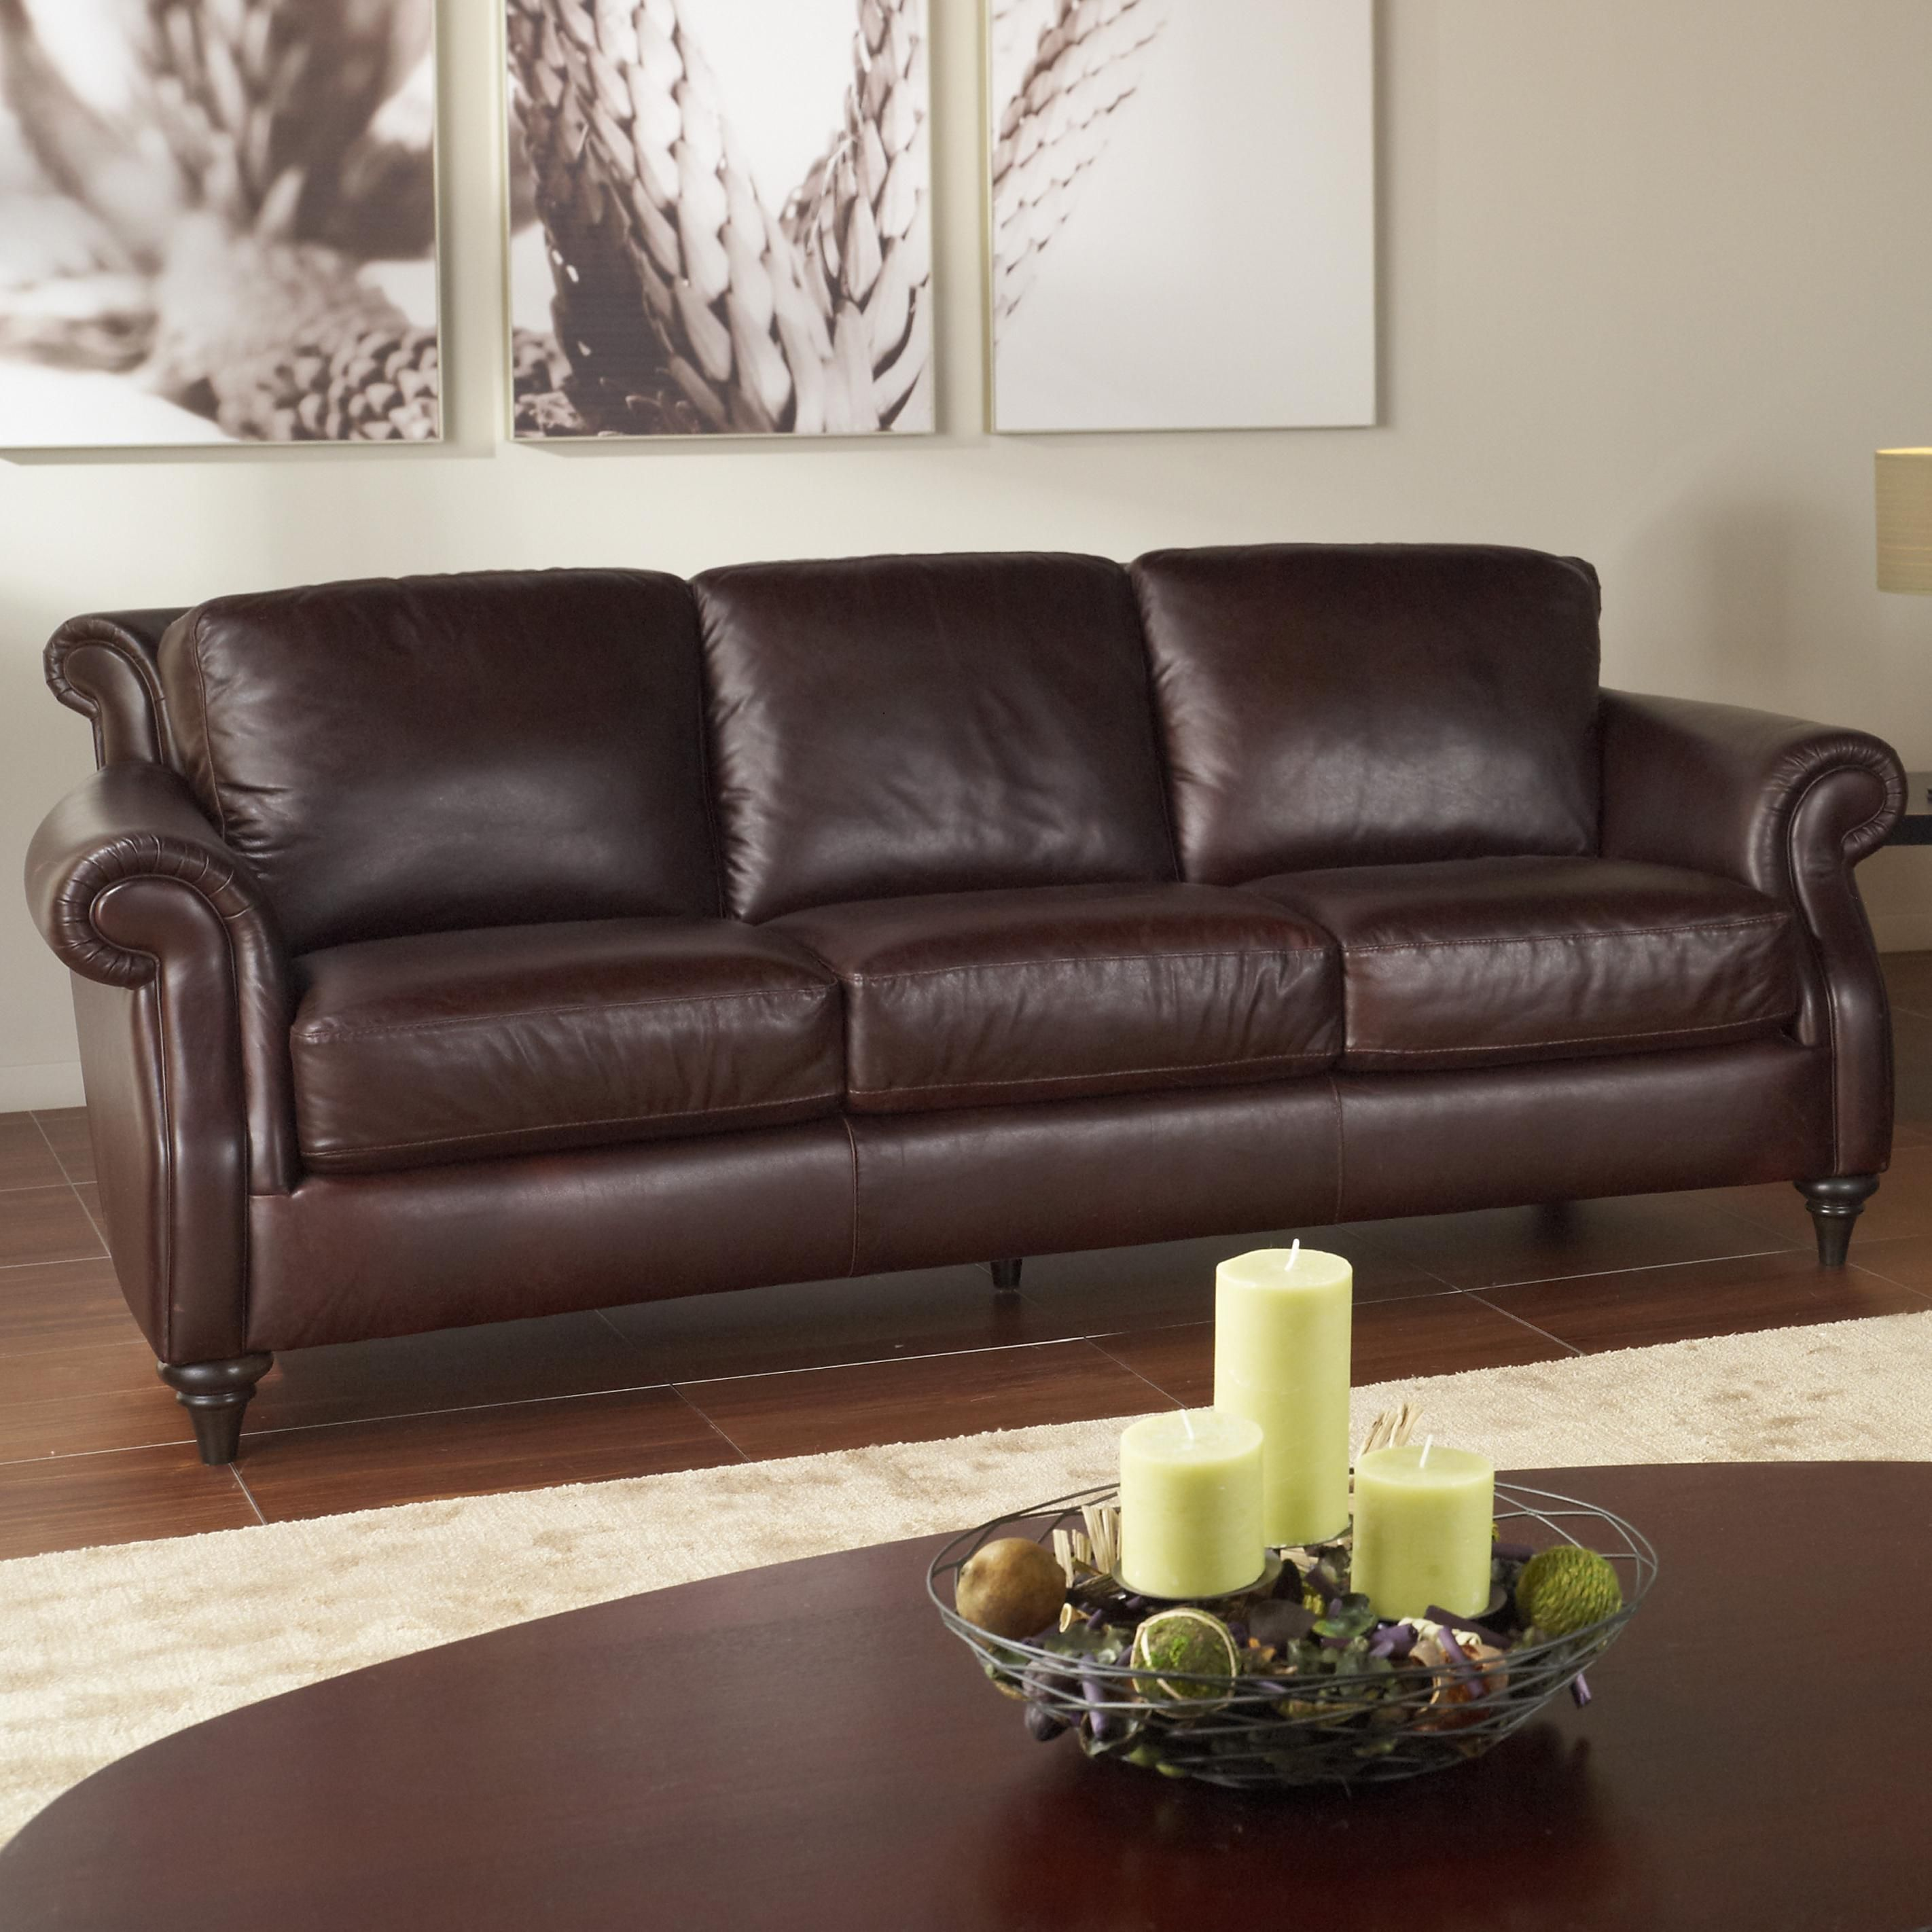 A297 Traditional Leather Sofa with Wood Feet by Natuzzi Editions ...